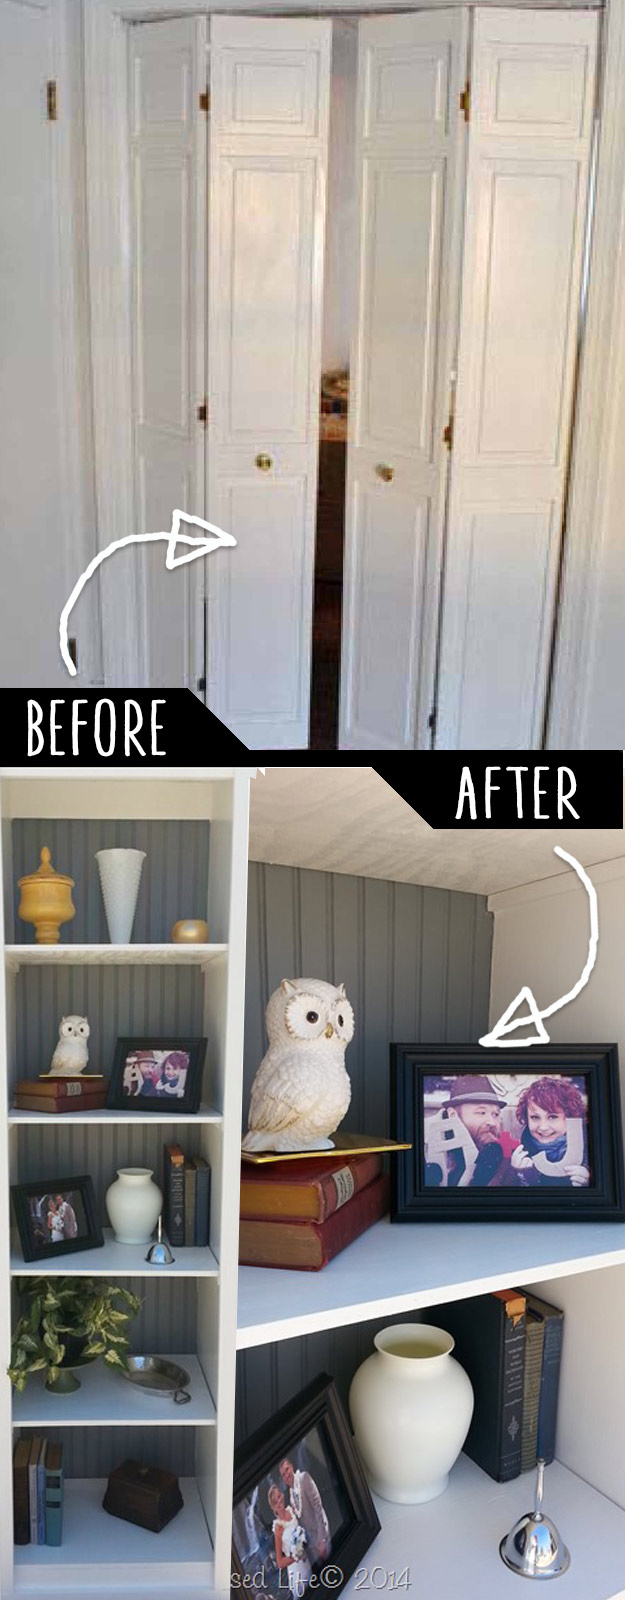 DIY Furniture Hacks   DIY Shelving Ideas Closet Door Into Shelf   Cool Ideas for Creative Do It Yourself Furniture Made From Things You Might Not Expect